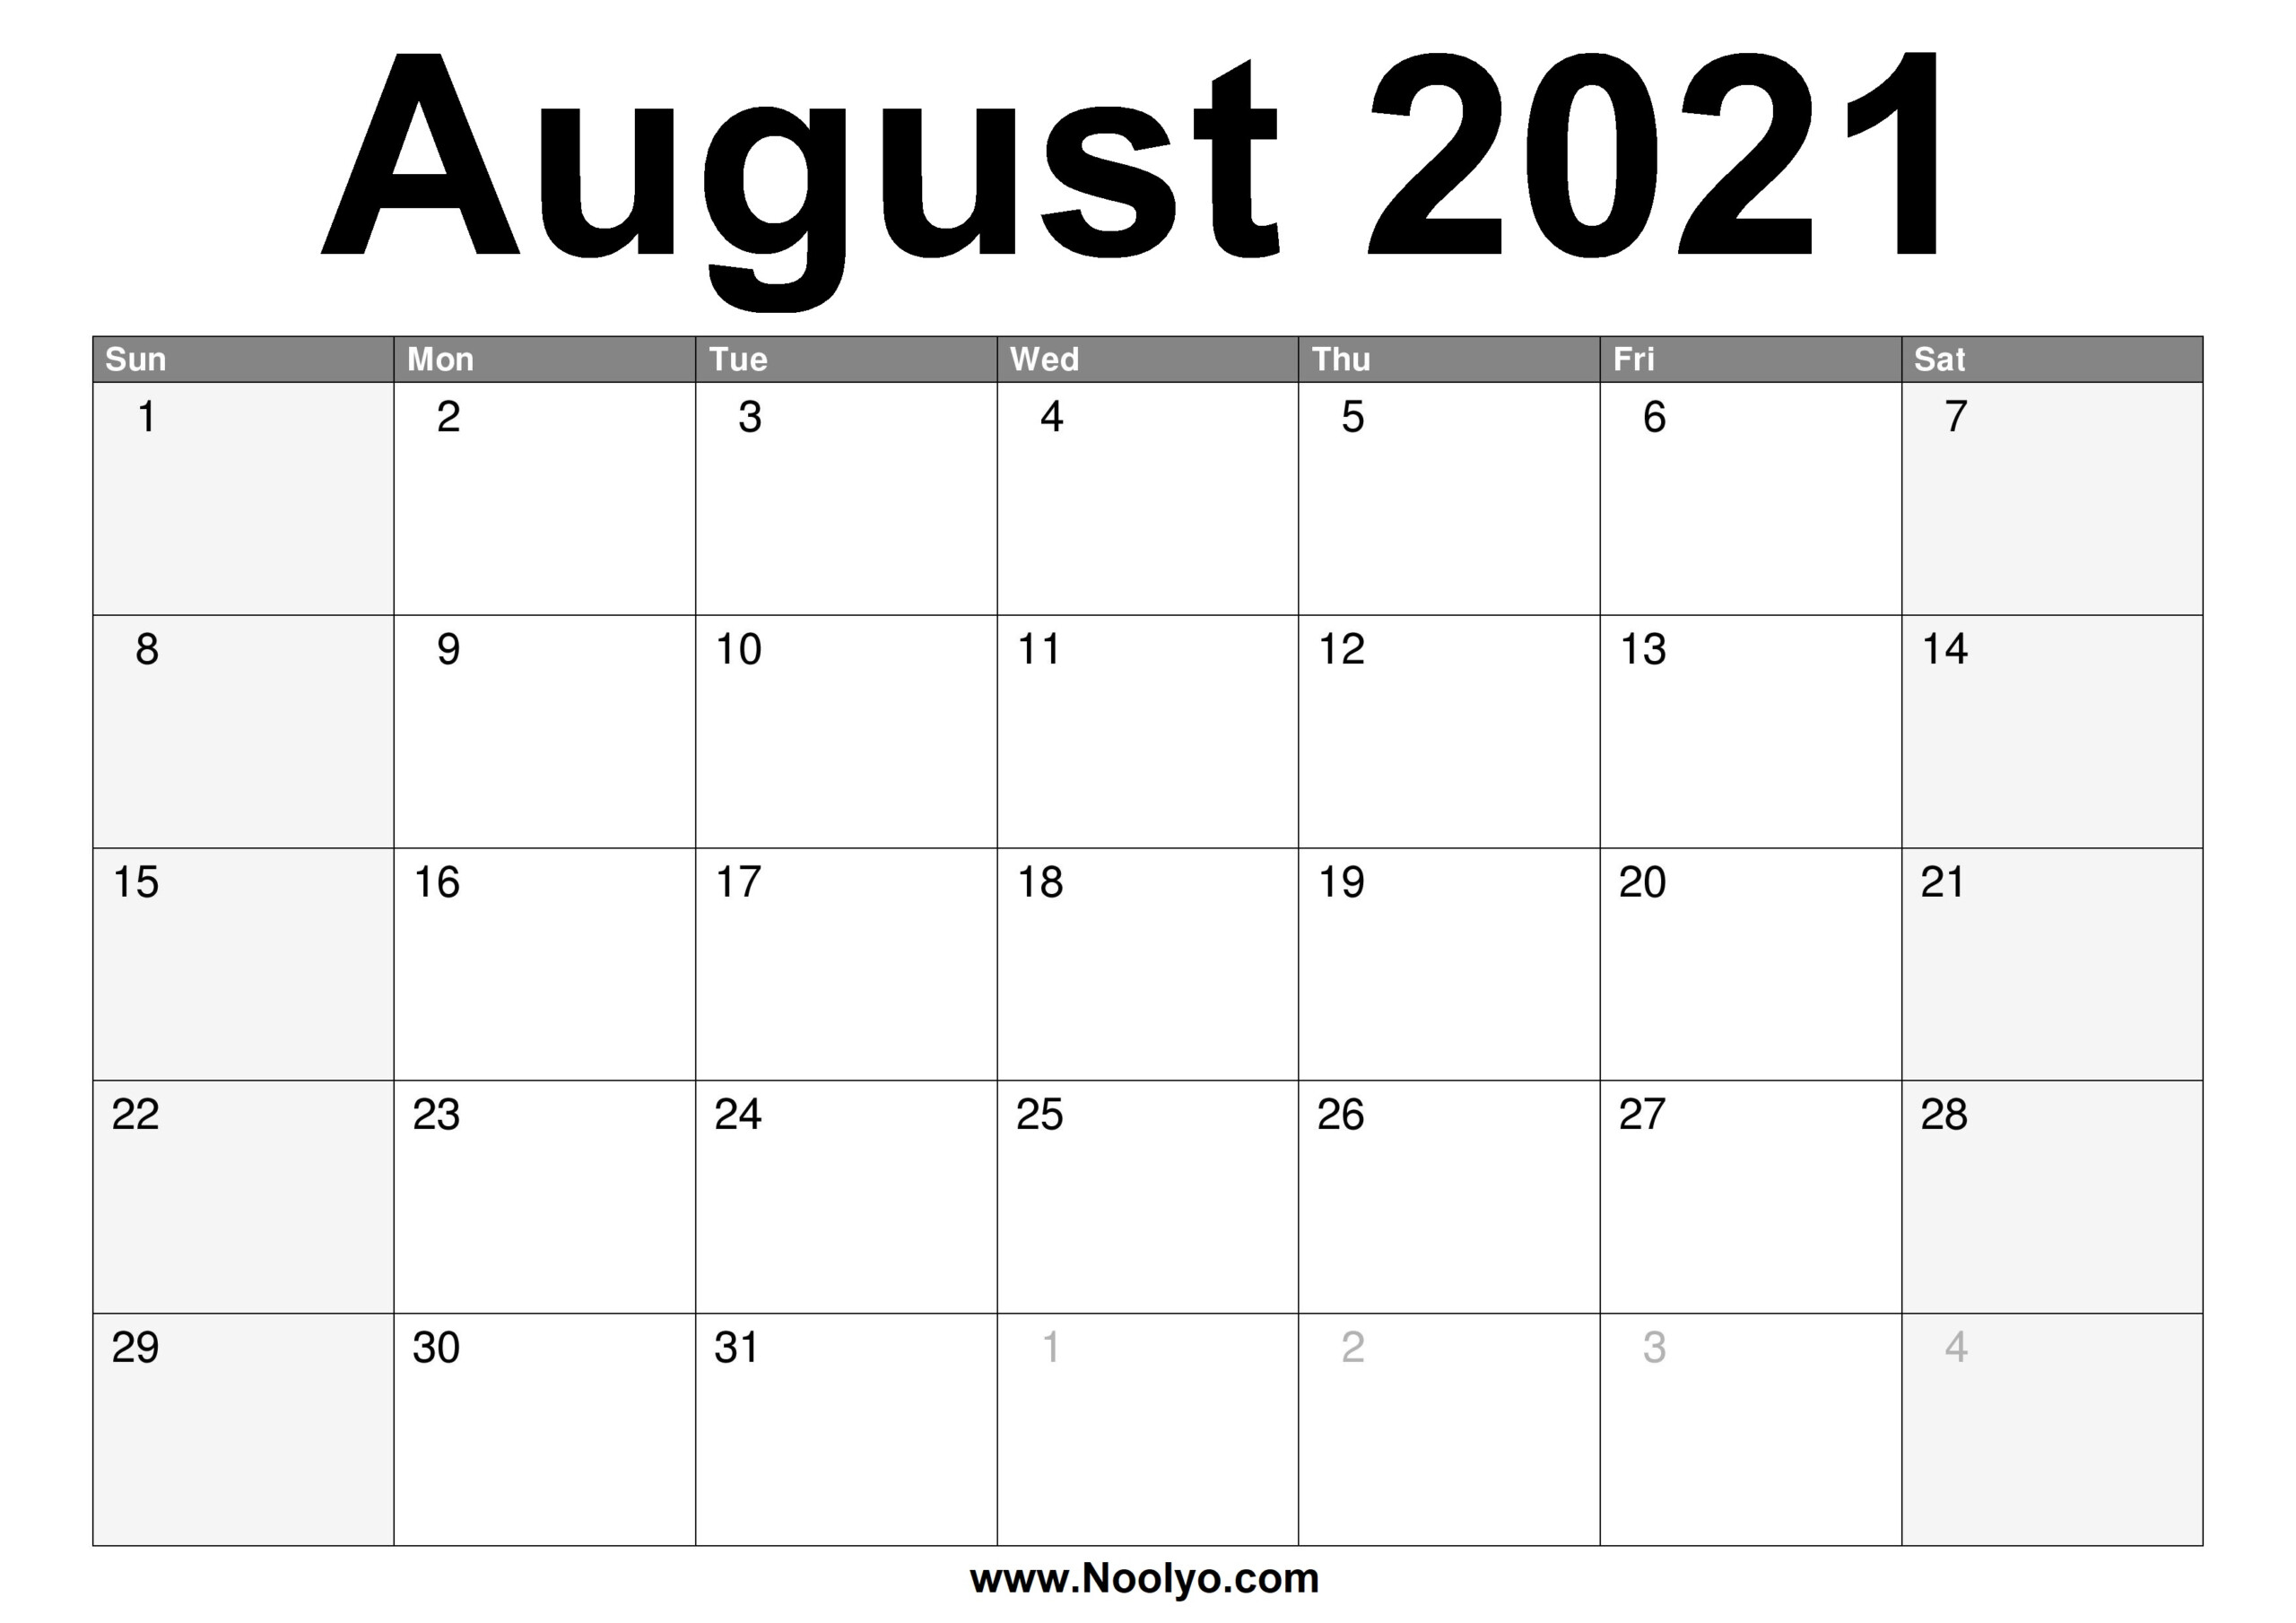 August 2021 Calendar Printable – Free Download – Noolyo